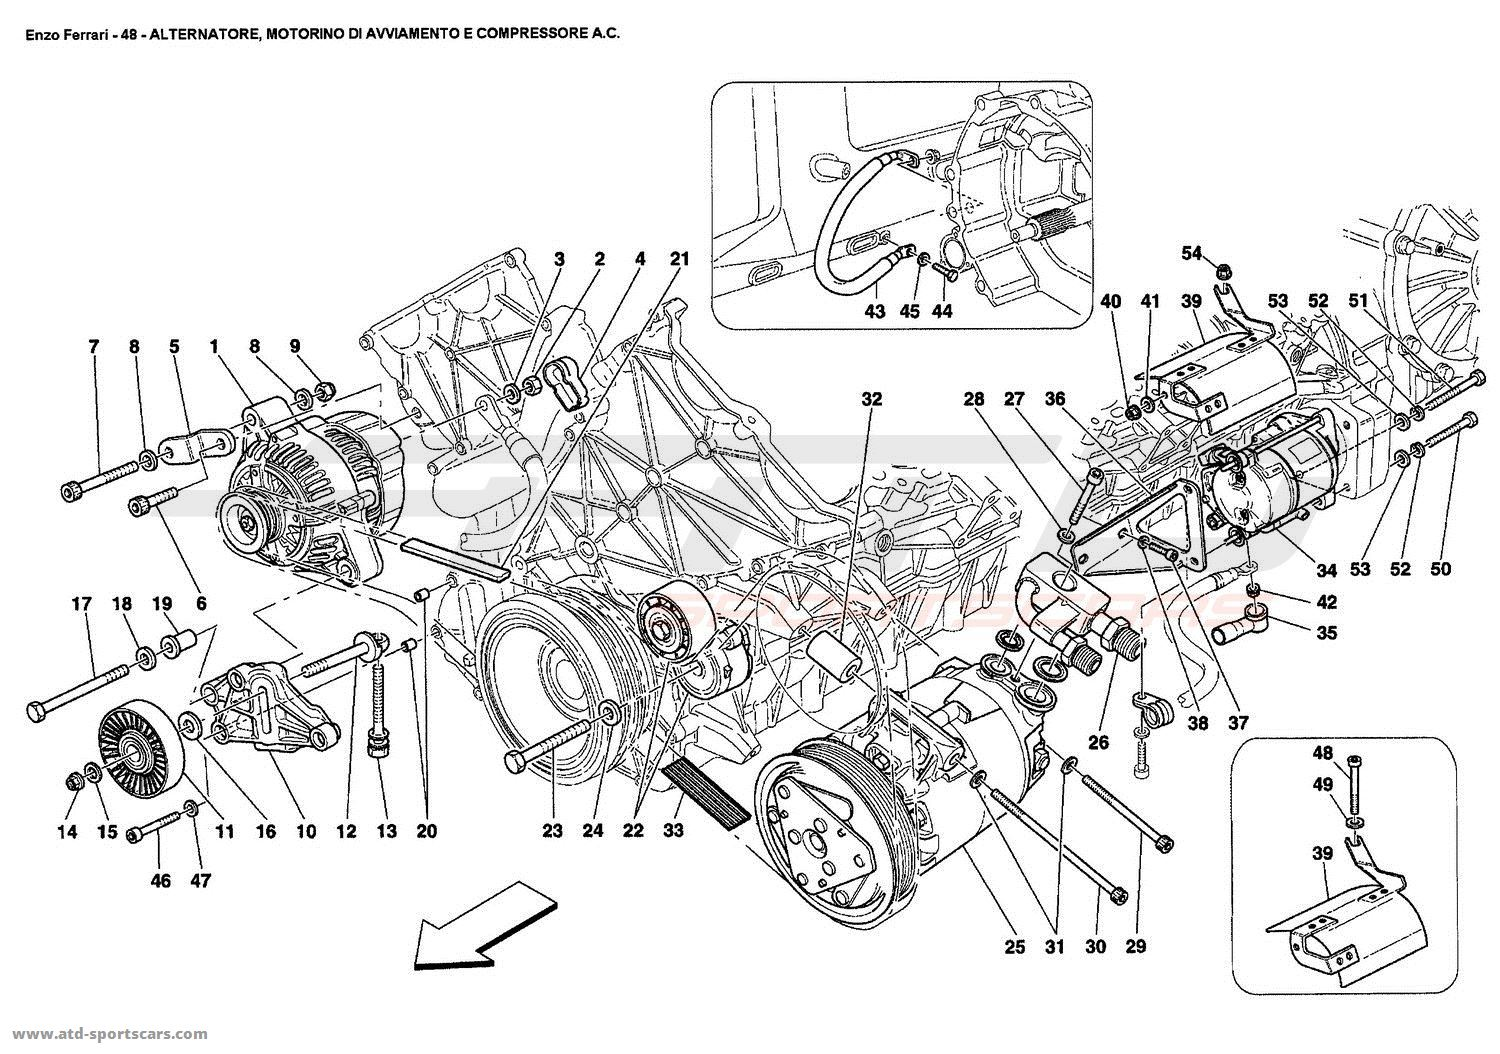 Massey Ferguson 180 Parts Diagram : Massey ferguson wiring diagram imageresizertool